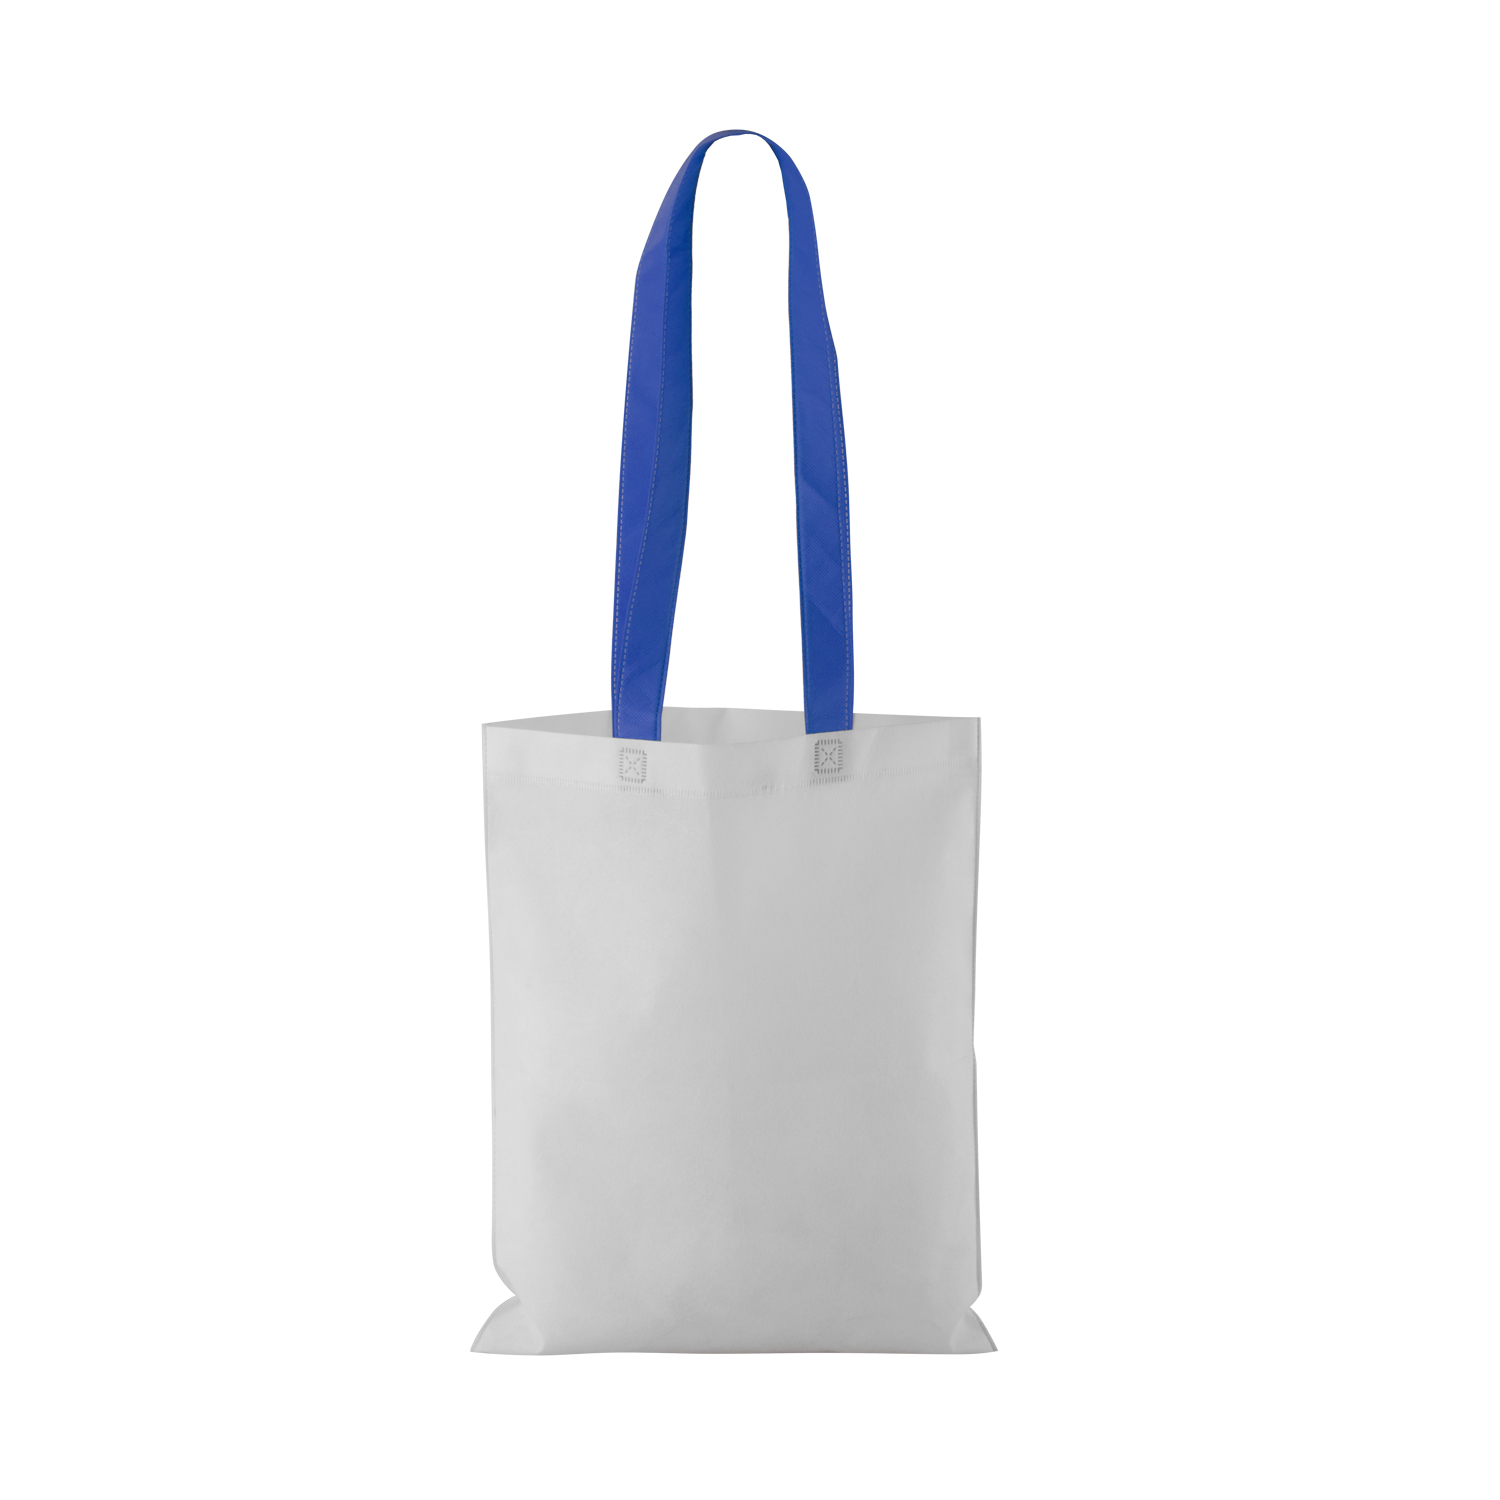 Non-woven Shopping bag with long handle (33 x 41,5 cm) - hmi17098-07 (Blue)